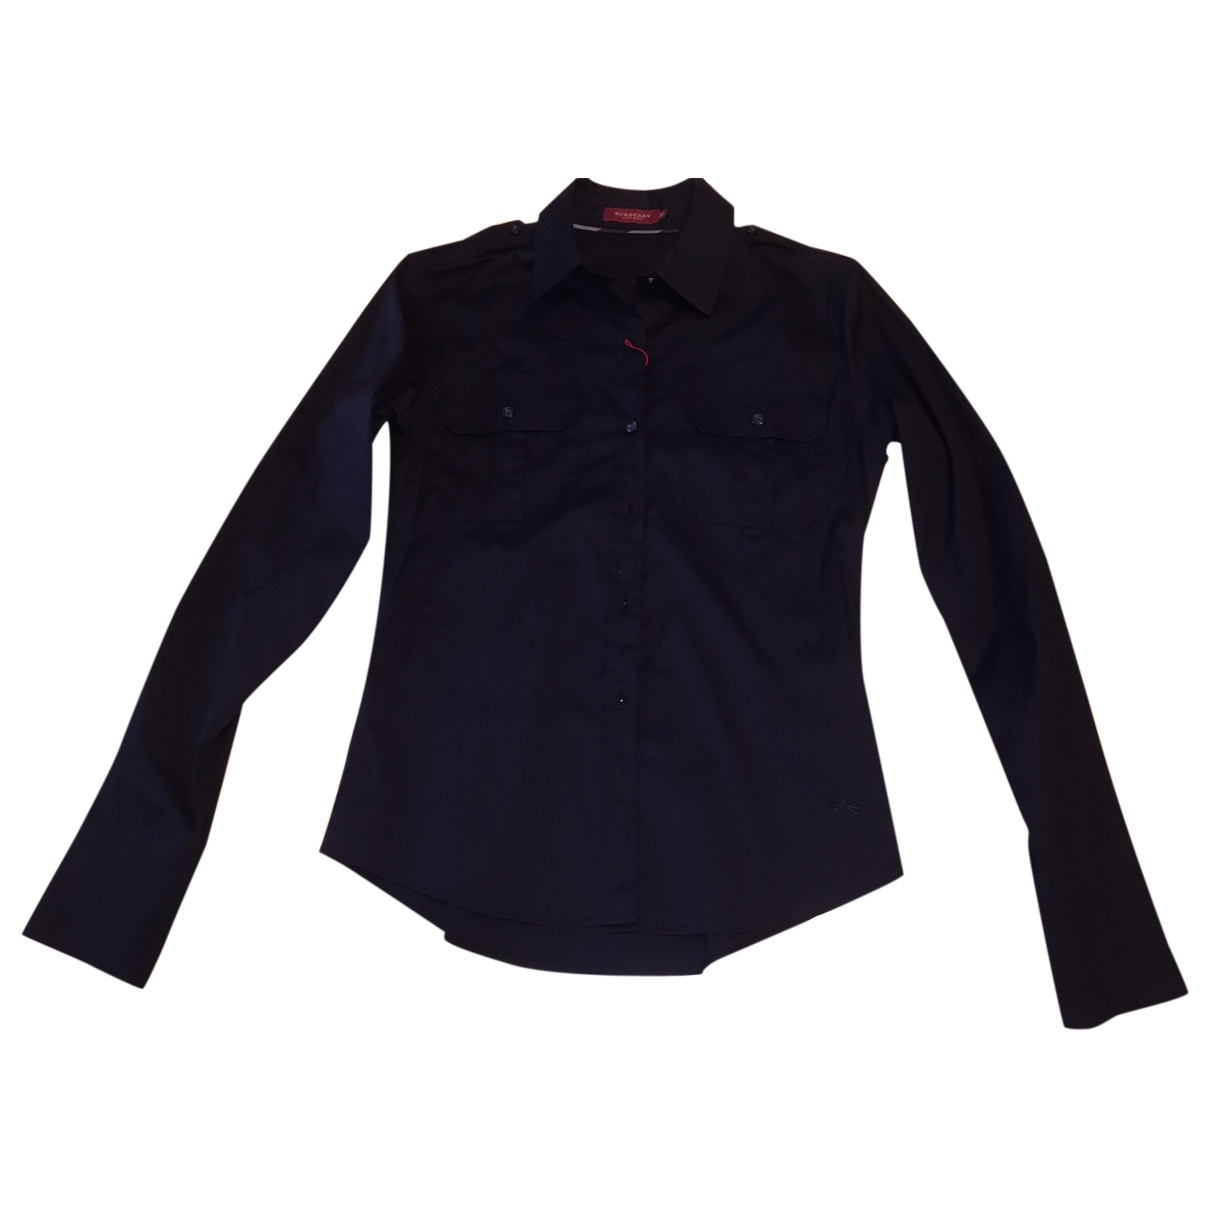 Burberry \N Black Cotton  top for Women 38 IT